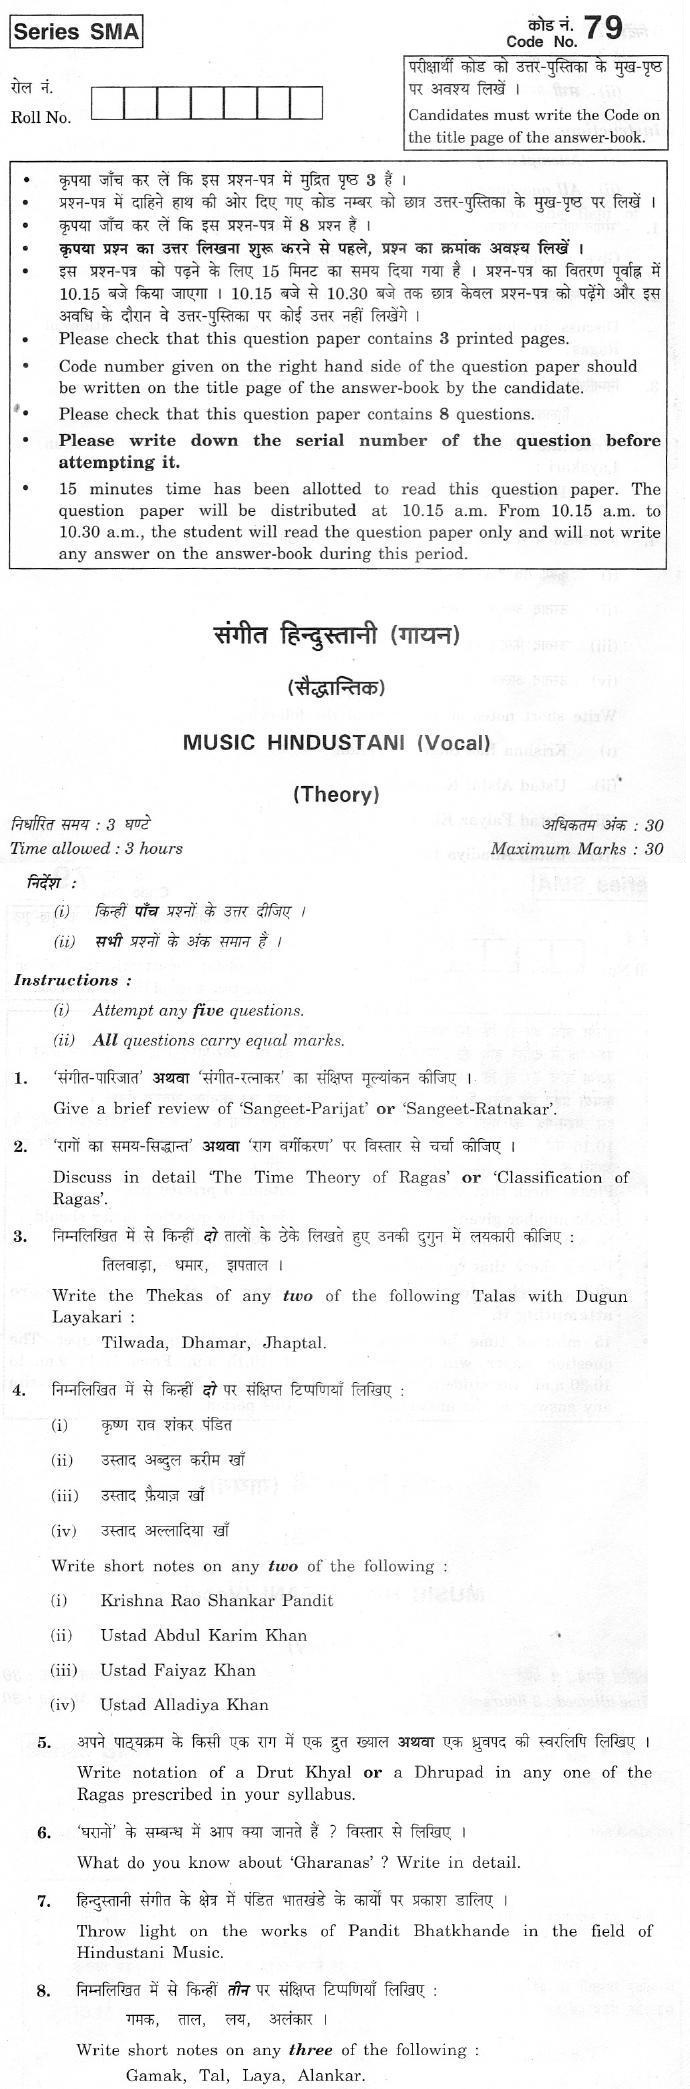 CBSE Class XII Previous Year Question Paper 2012 Music Hindustani(Vocal)